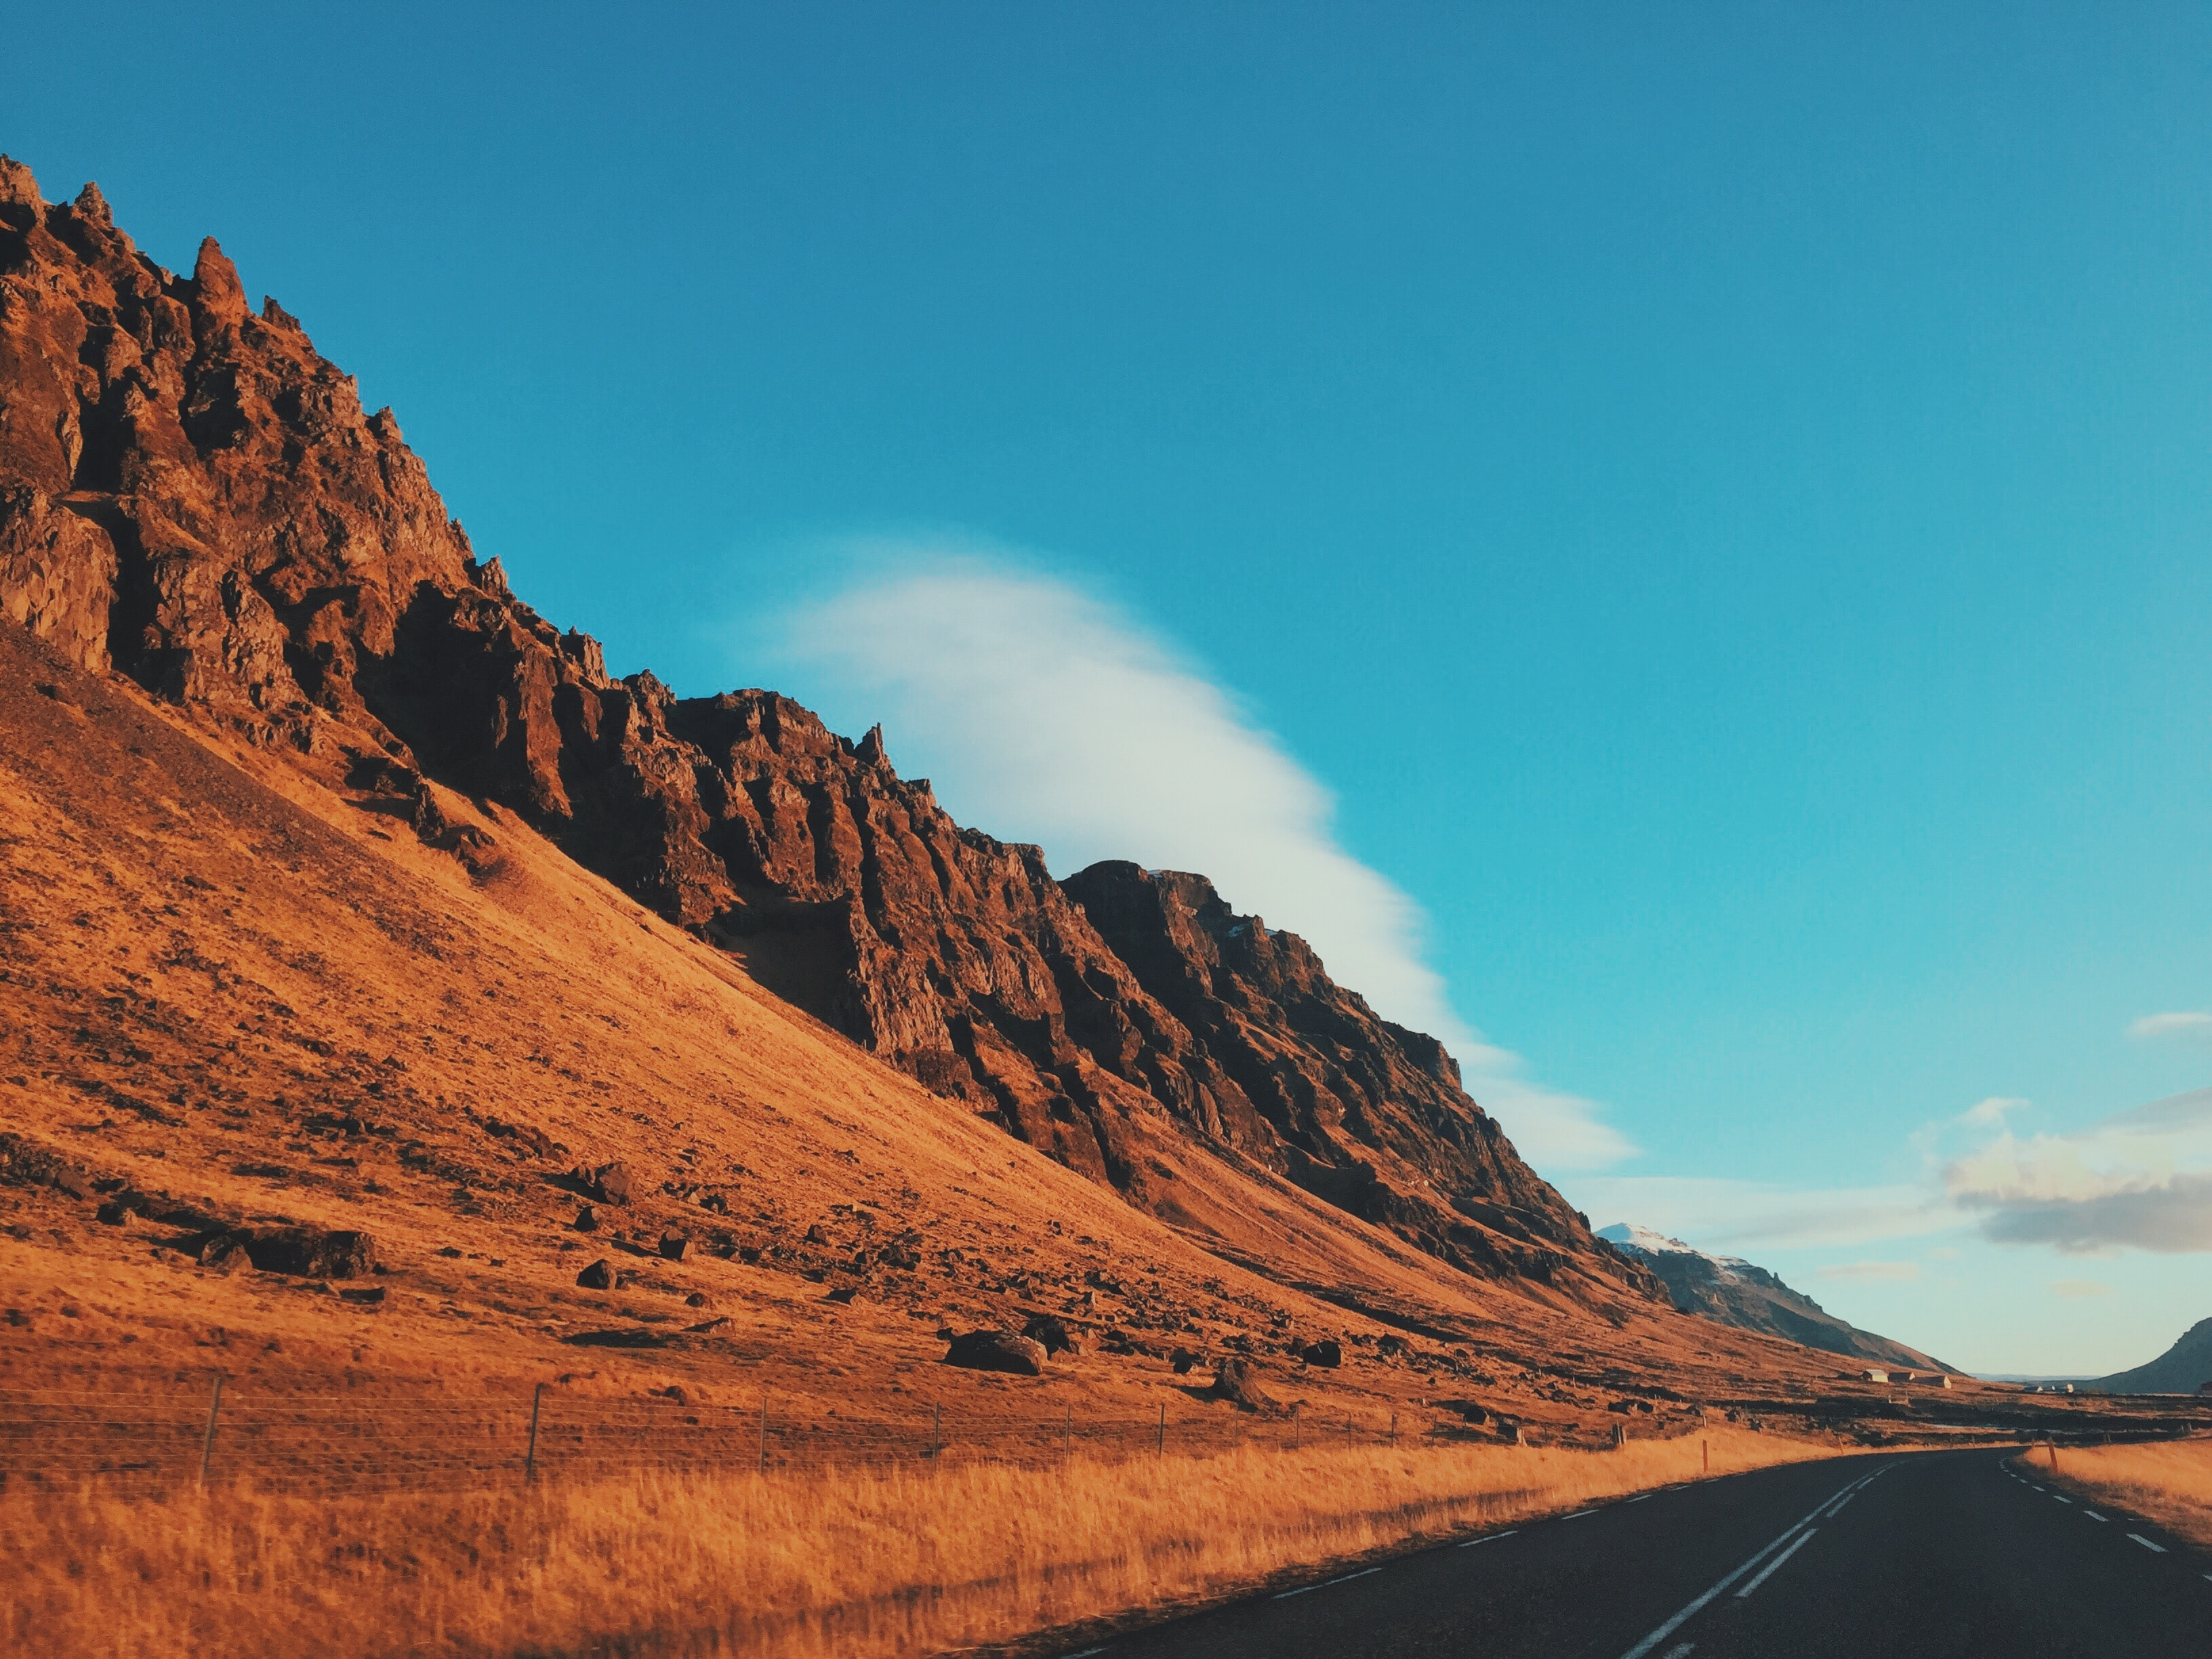 A rocky canyon highway in Iceland